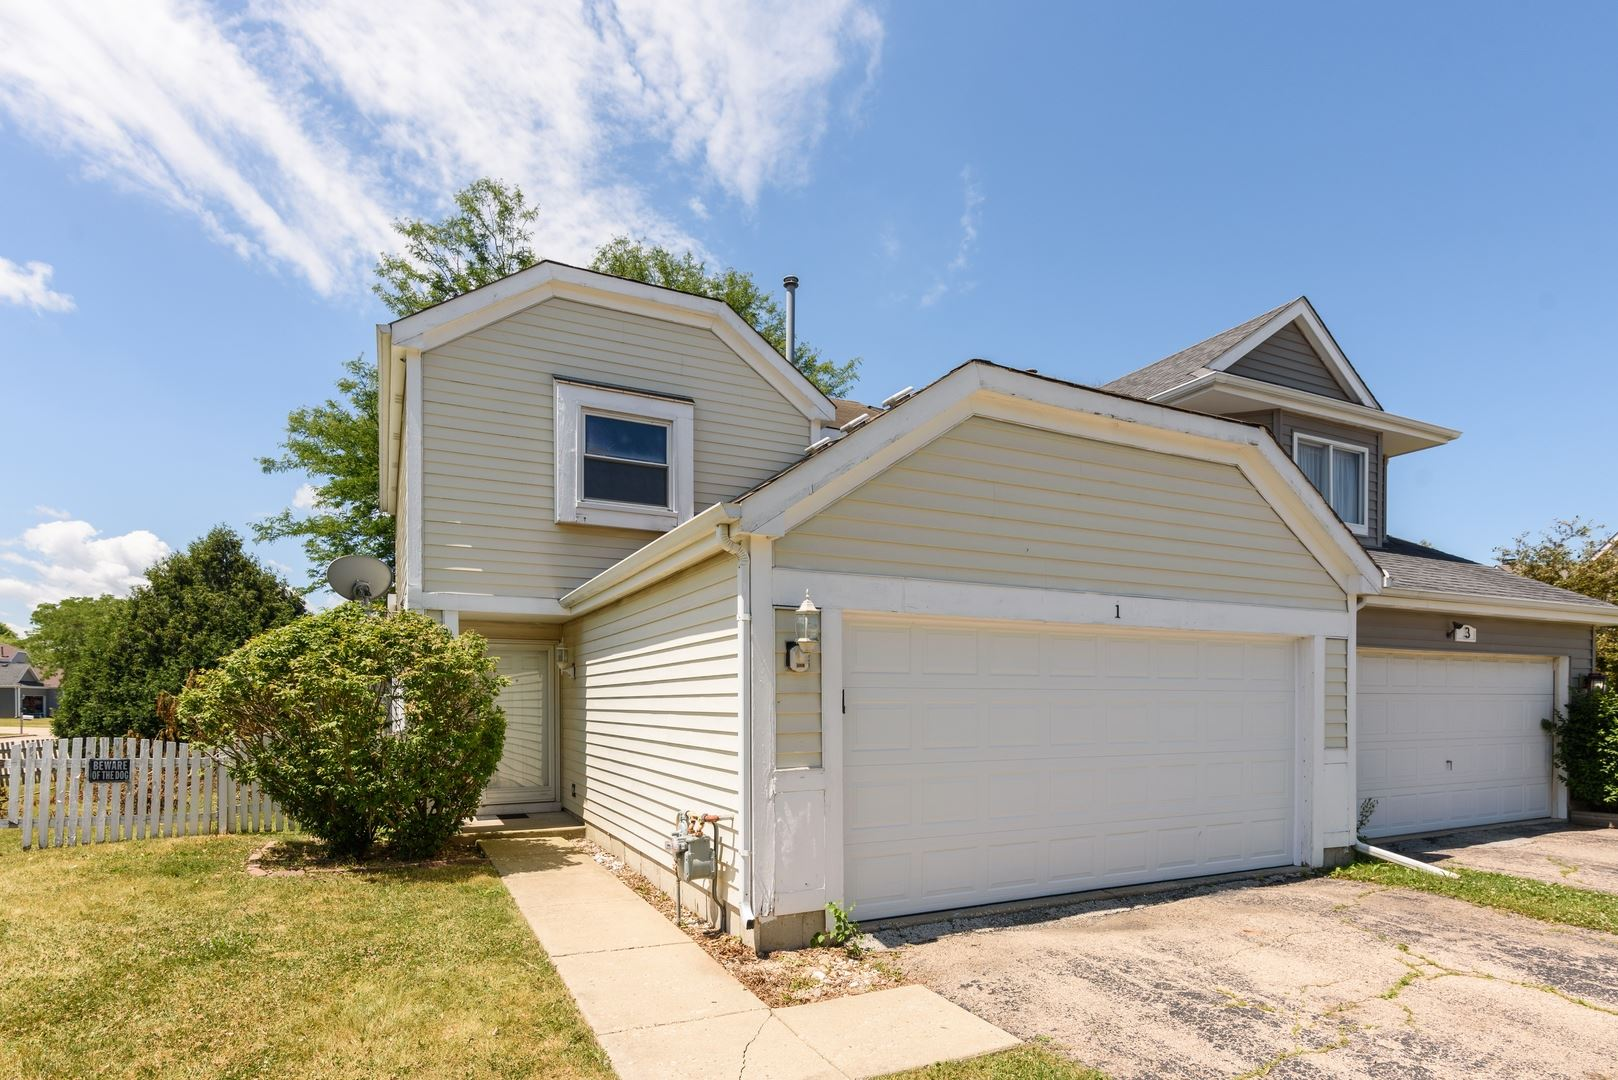 1 ANDOVER Court, South Elgin, IL 60177 - #: 10763605